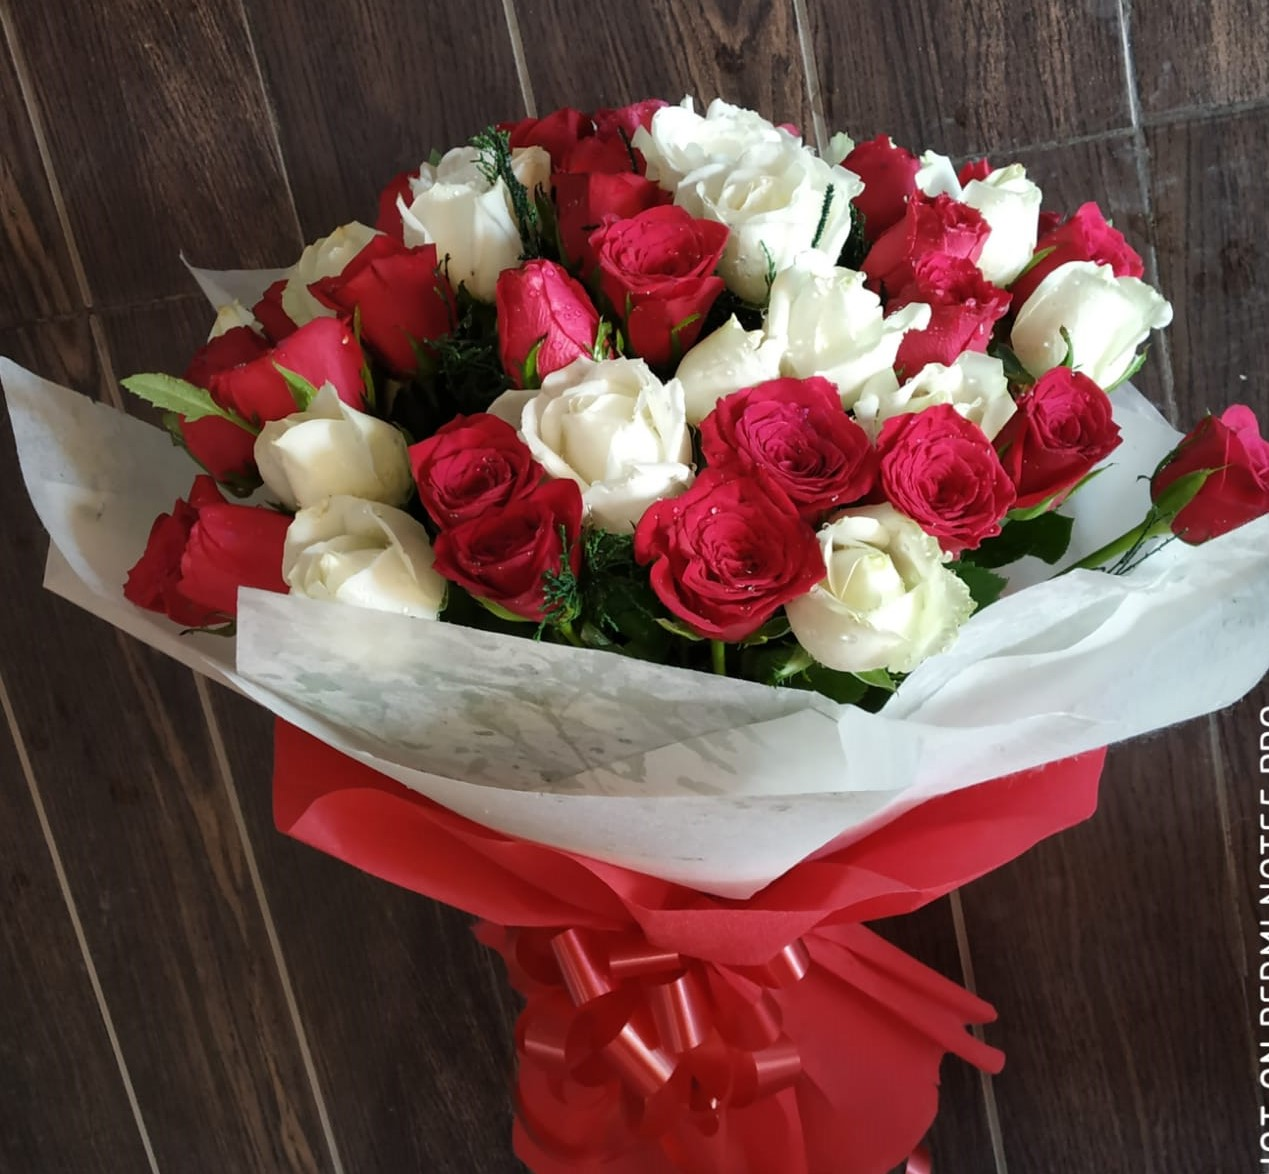 Flowers Delivery in Sector 40 GurgaonRed & White Roses in Duble Layer Packing